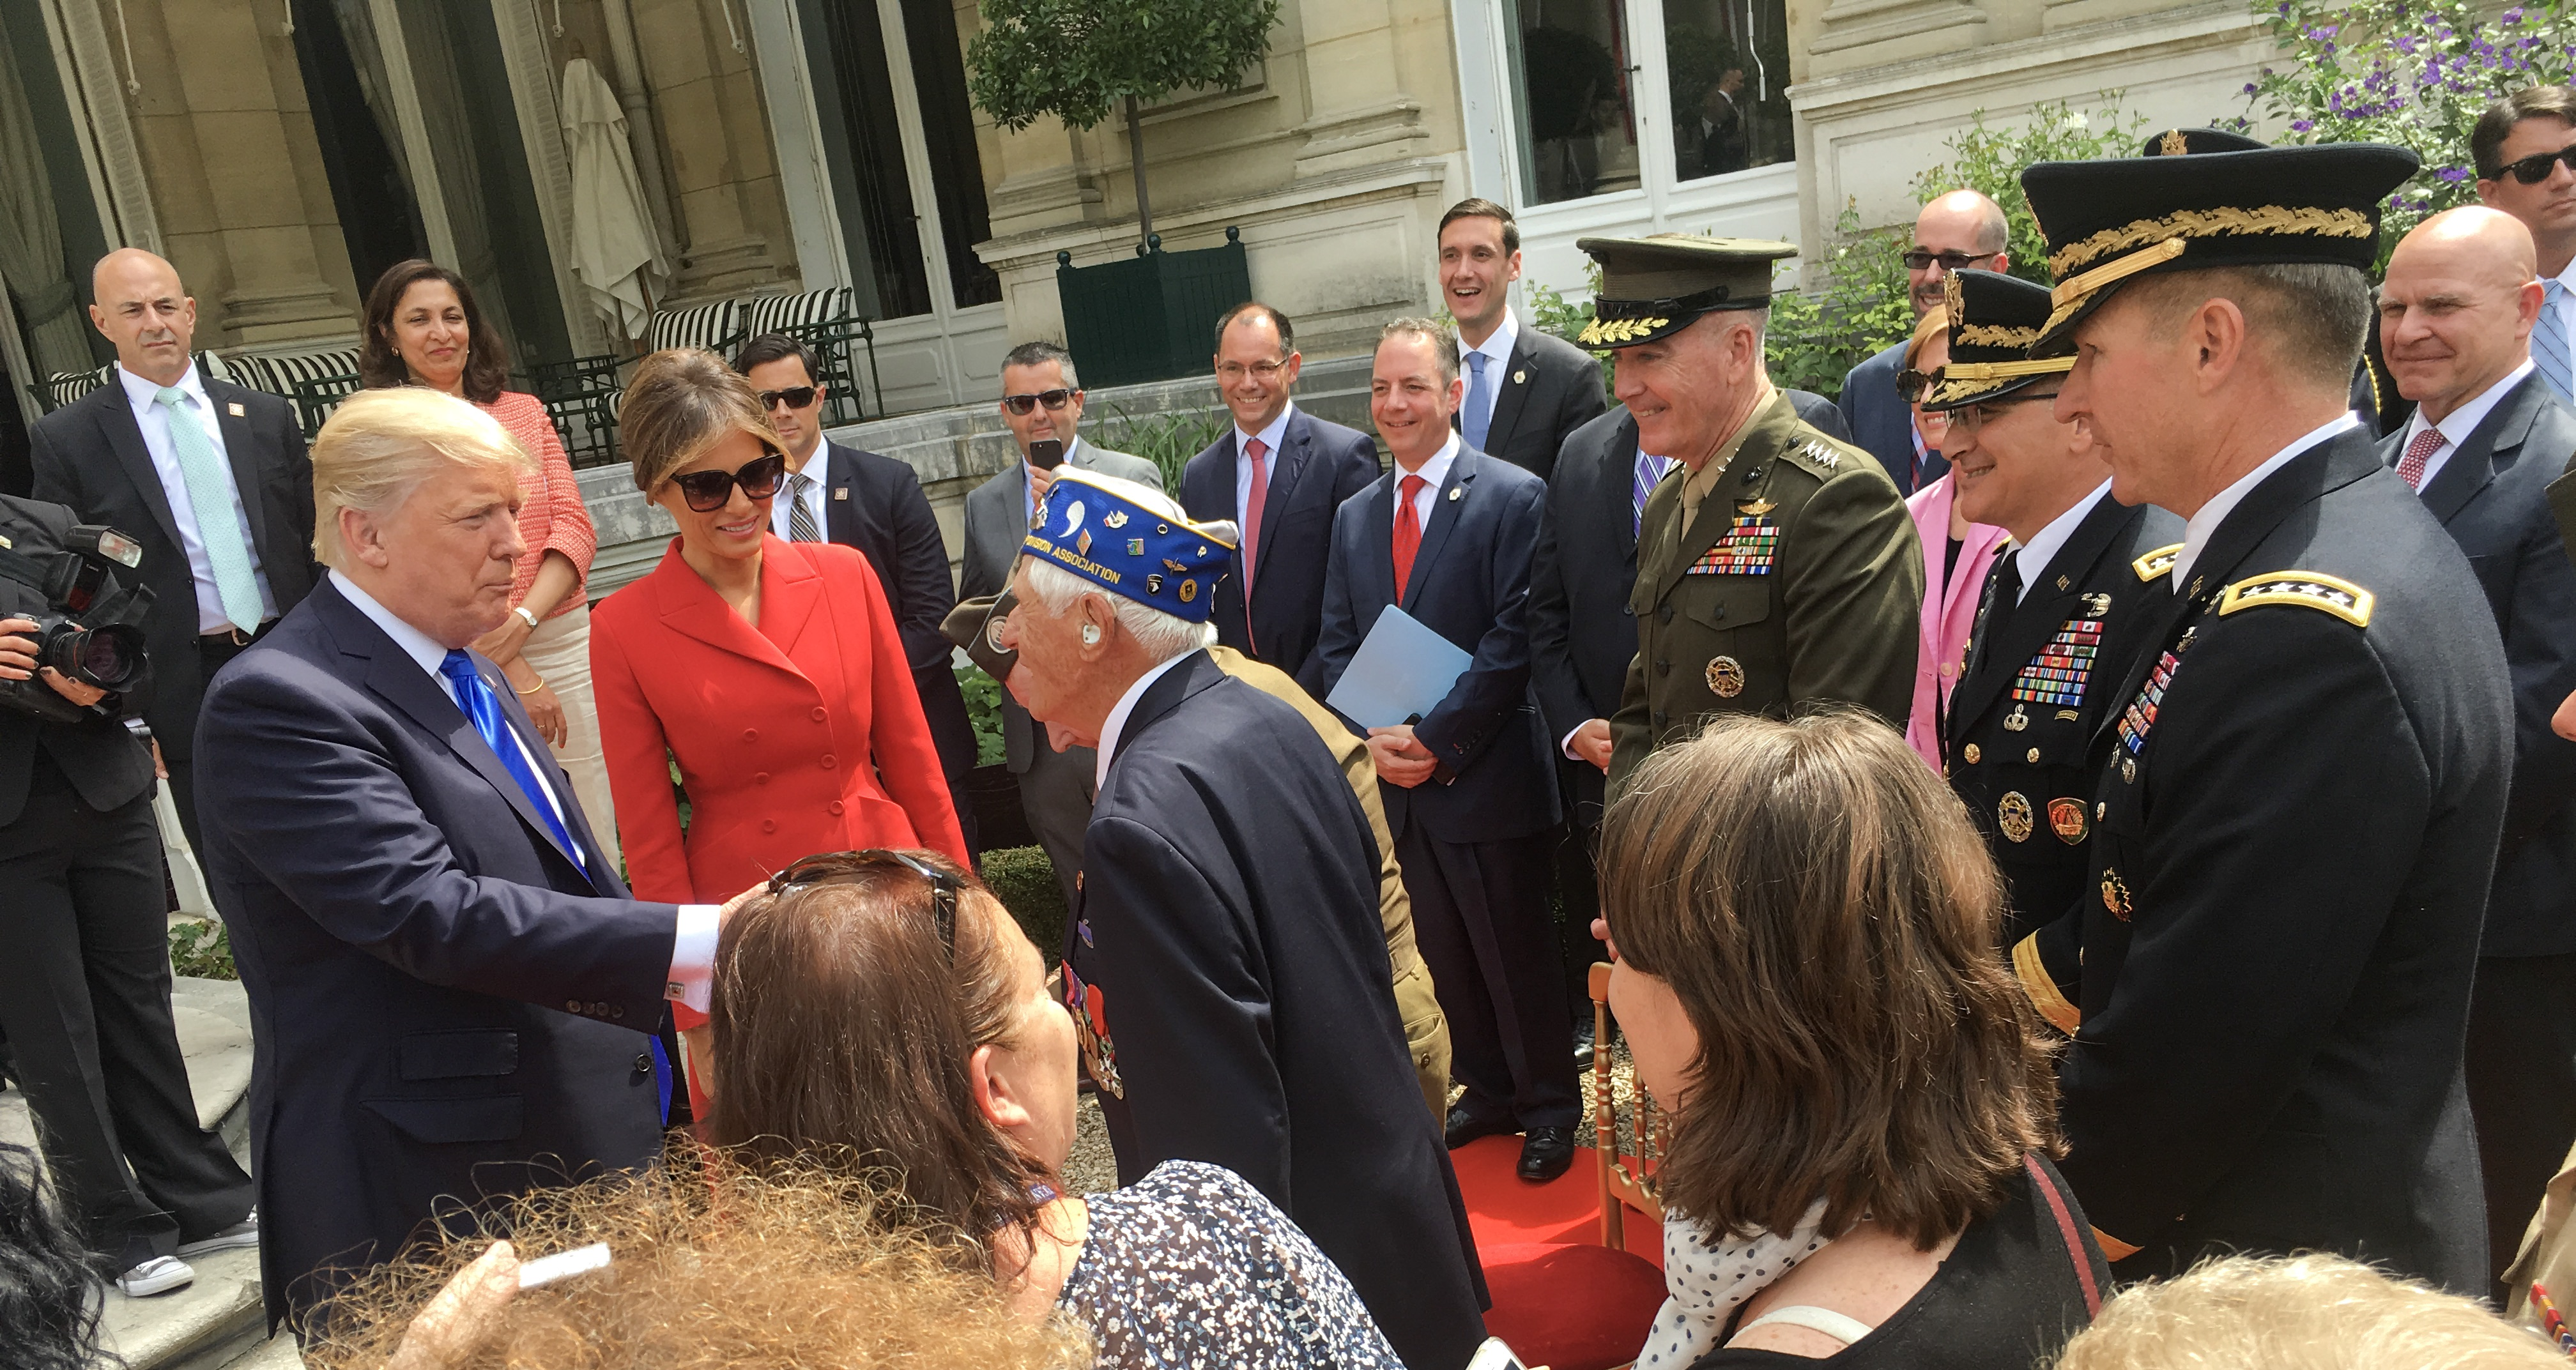 President Trump visits the U.S. Embassy in Paris, France for a meet and greet with staff and service members from U.S. European Command followed by a working lunch with senior members of his delegation and U.S. Military leaders participating in the Bastille Day festivities July 13, 2017. A historic first, nearly 200 American service members will lead the Military Parade on Bastille Day, July 14, 2017, along the famous Champs-Elysées in Paris in commemoration of the U.S. entry into WWI. The French government traditionally invites a country of honor to lead the parade, which is linked to a historical event and highlights a symbolic gesture of friendship.